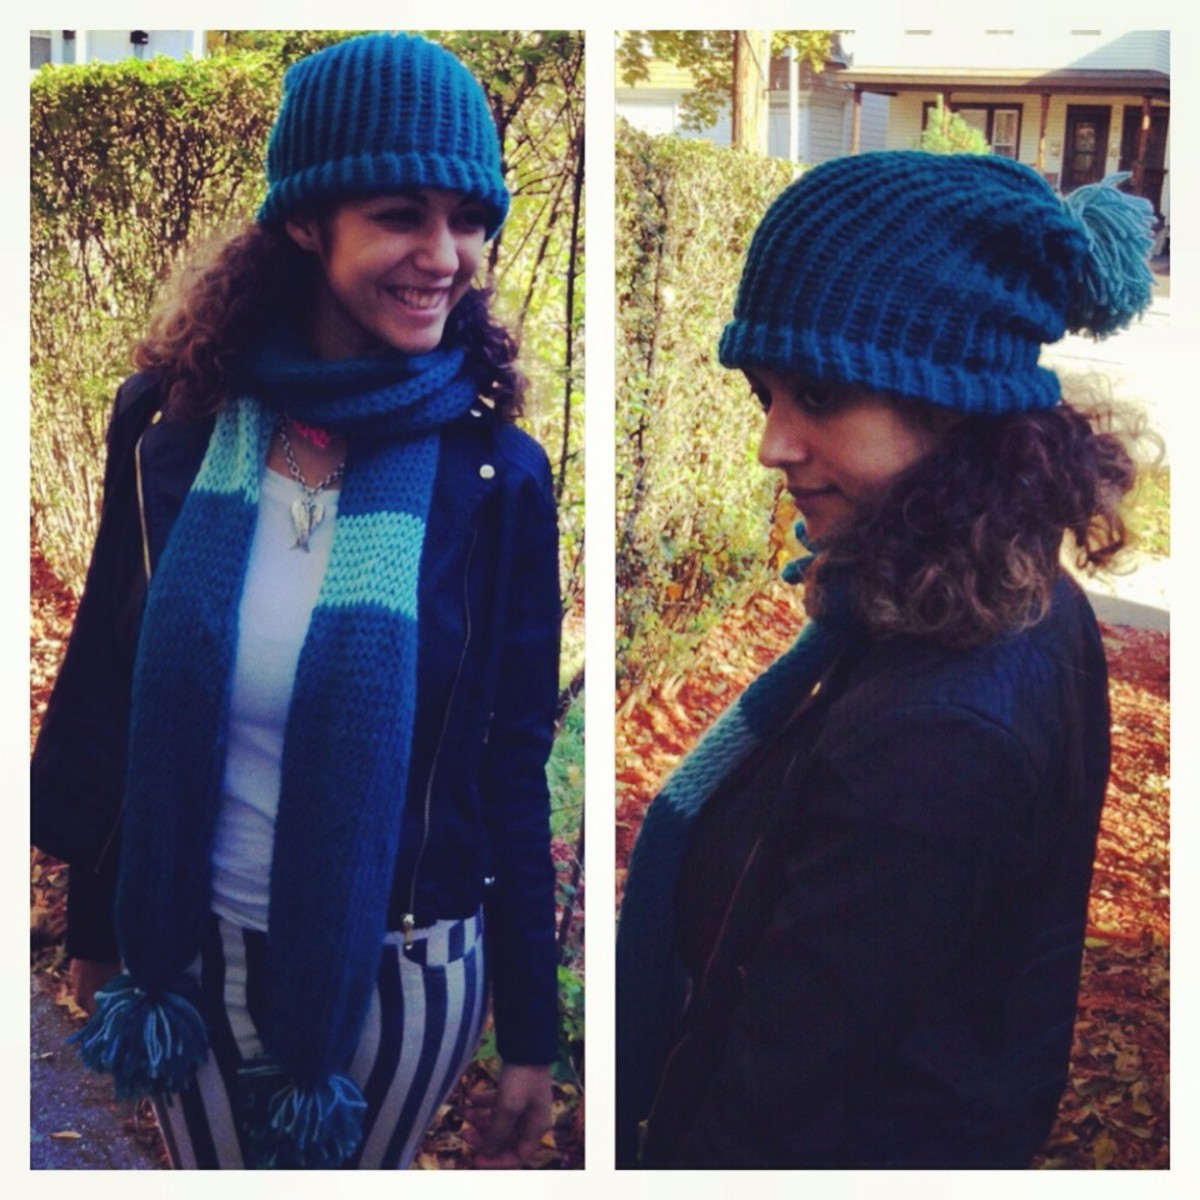 My first loom knit project was this scarf and hat I made on a circle loom.  The scarf is extra thick, warm, and nice and soft!  I love it!